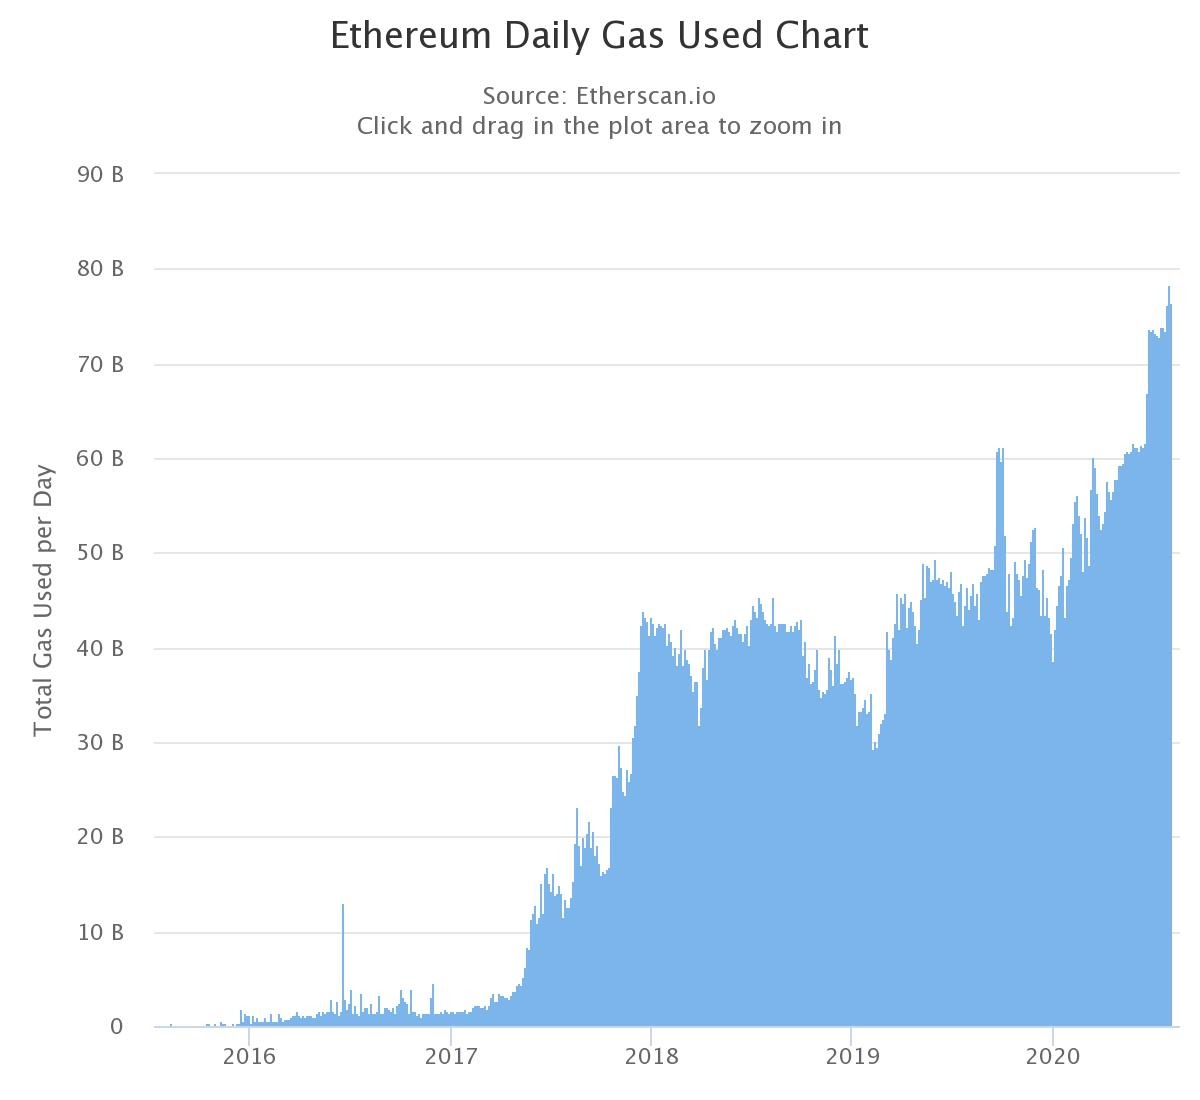 The daily gas used on Ethereum